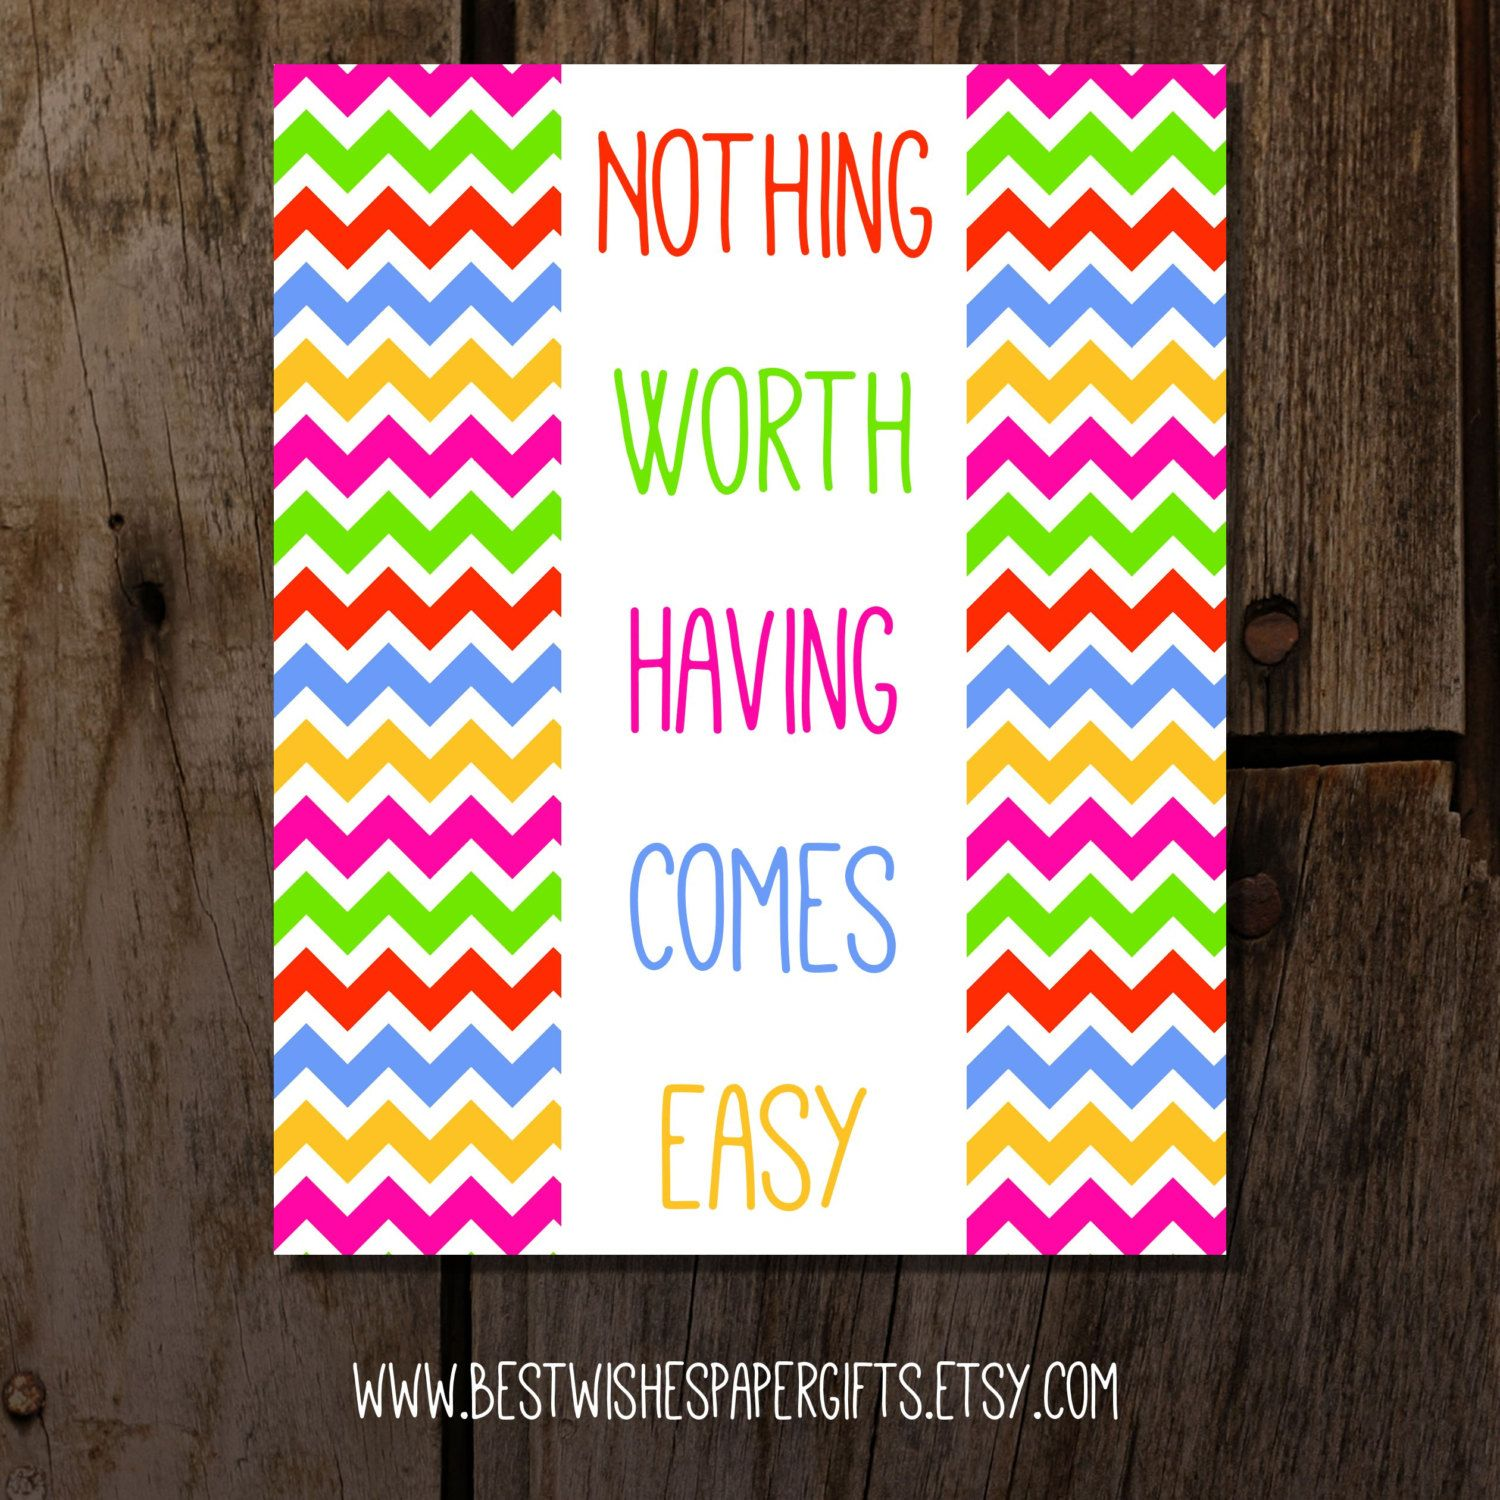 Nothing Worth Having Ever Comes Easy  by BestWishesPaperGifts, $12.00